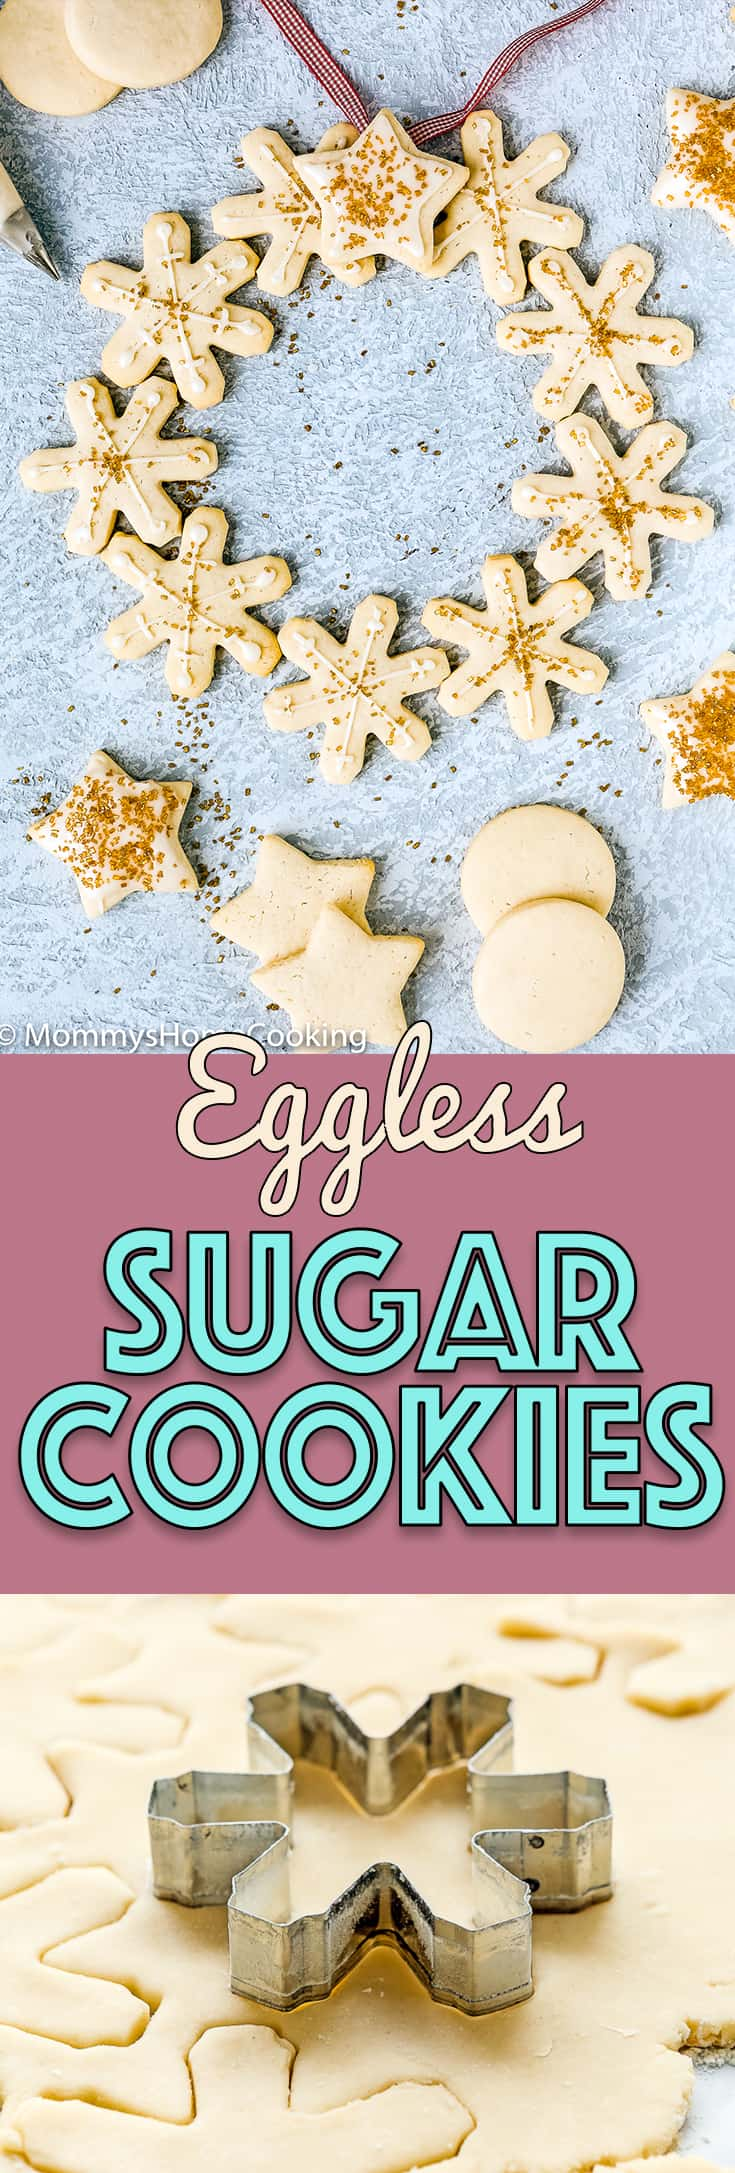 These Eggless Sugar Cookies are tender, buttery, keep their shape when baked, and yes, taste amazing, too. Serve them with or without icing and watch them disappear right before your eyes! http://mommyshomecooking.com